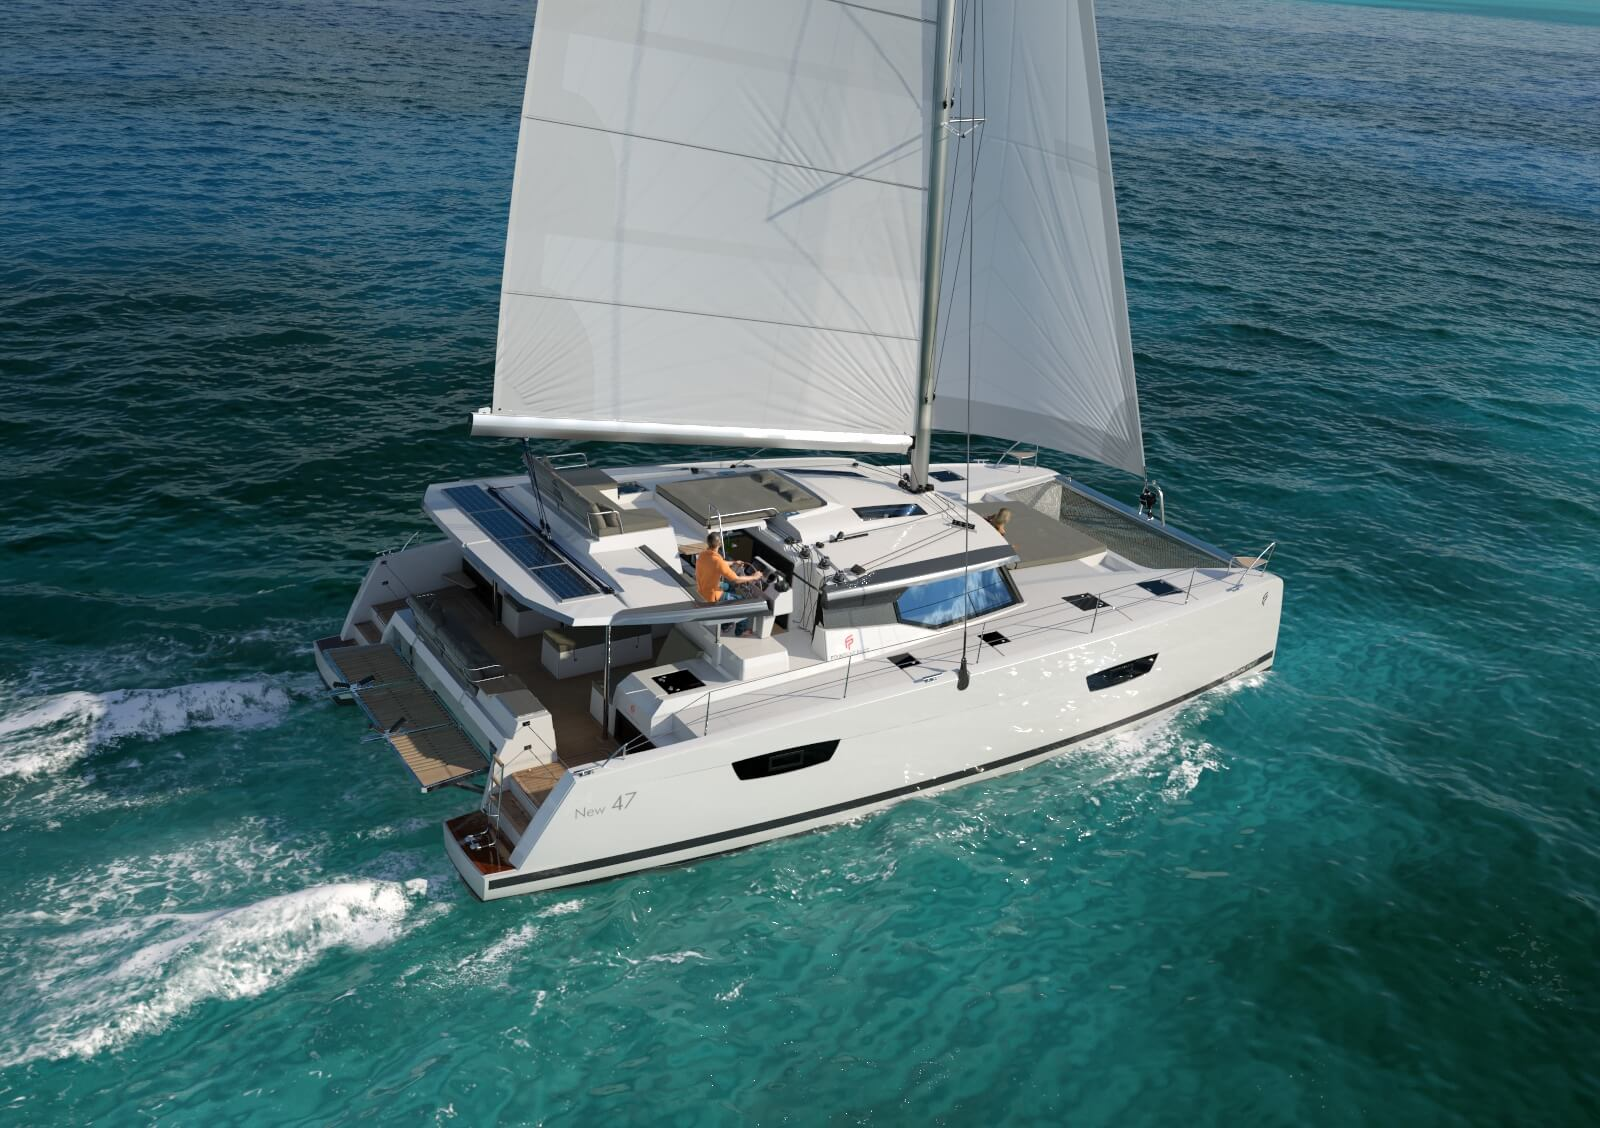 The new sailing catamaran Fountaine Pajot 47, currently under construction for Yates Mallorca